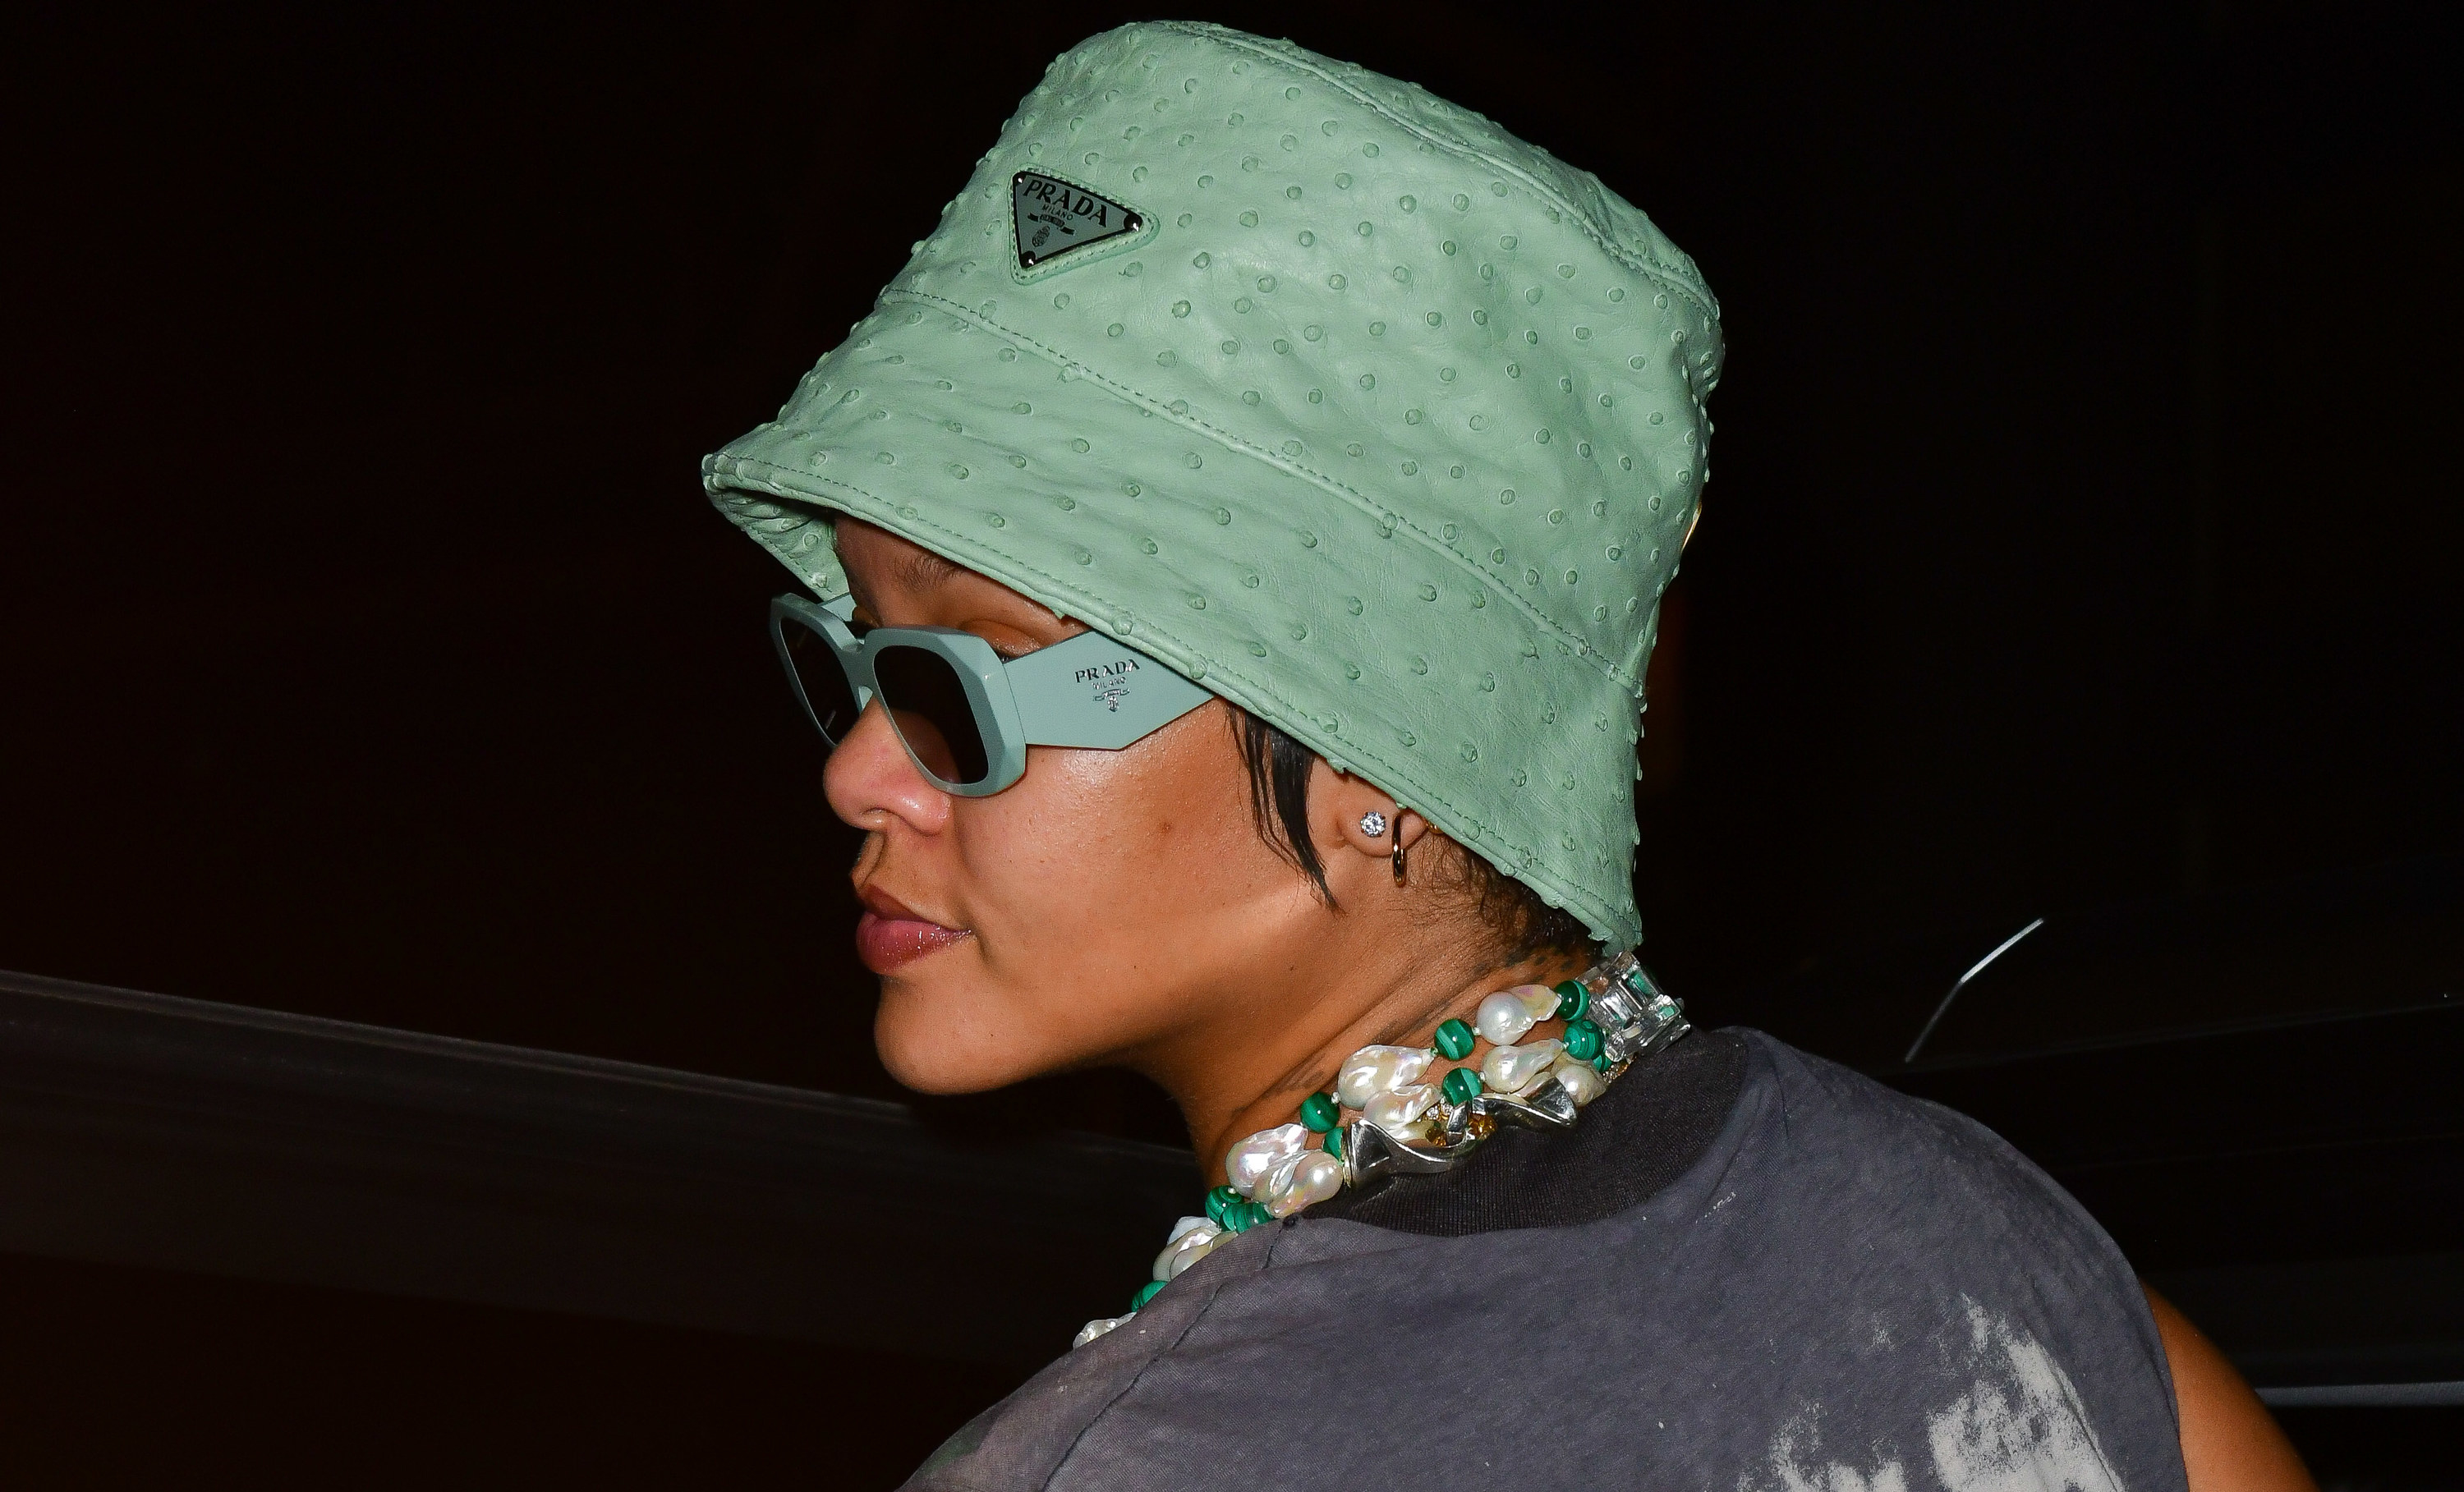 Rihanna is photographed wearing a green hat and sunglasses in New York City